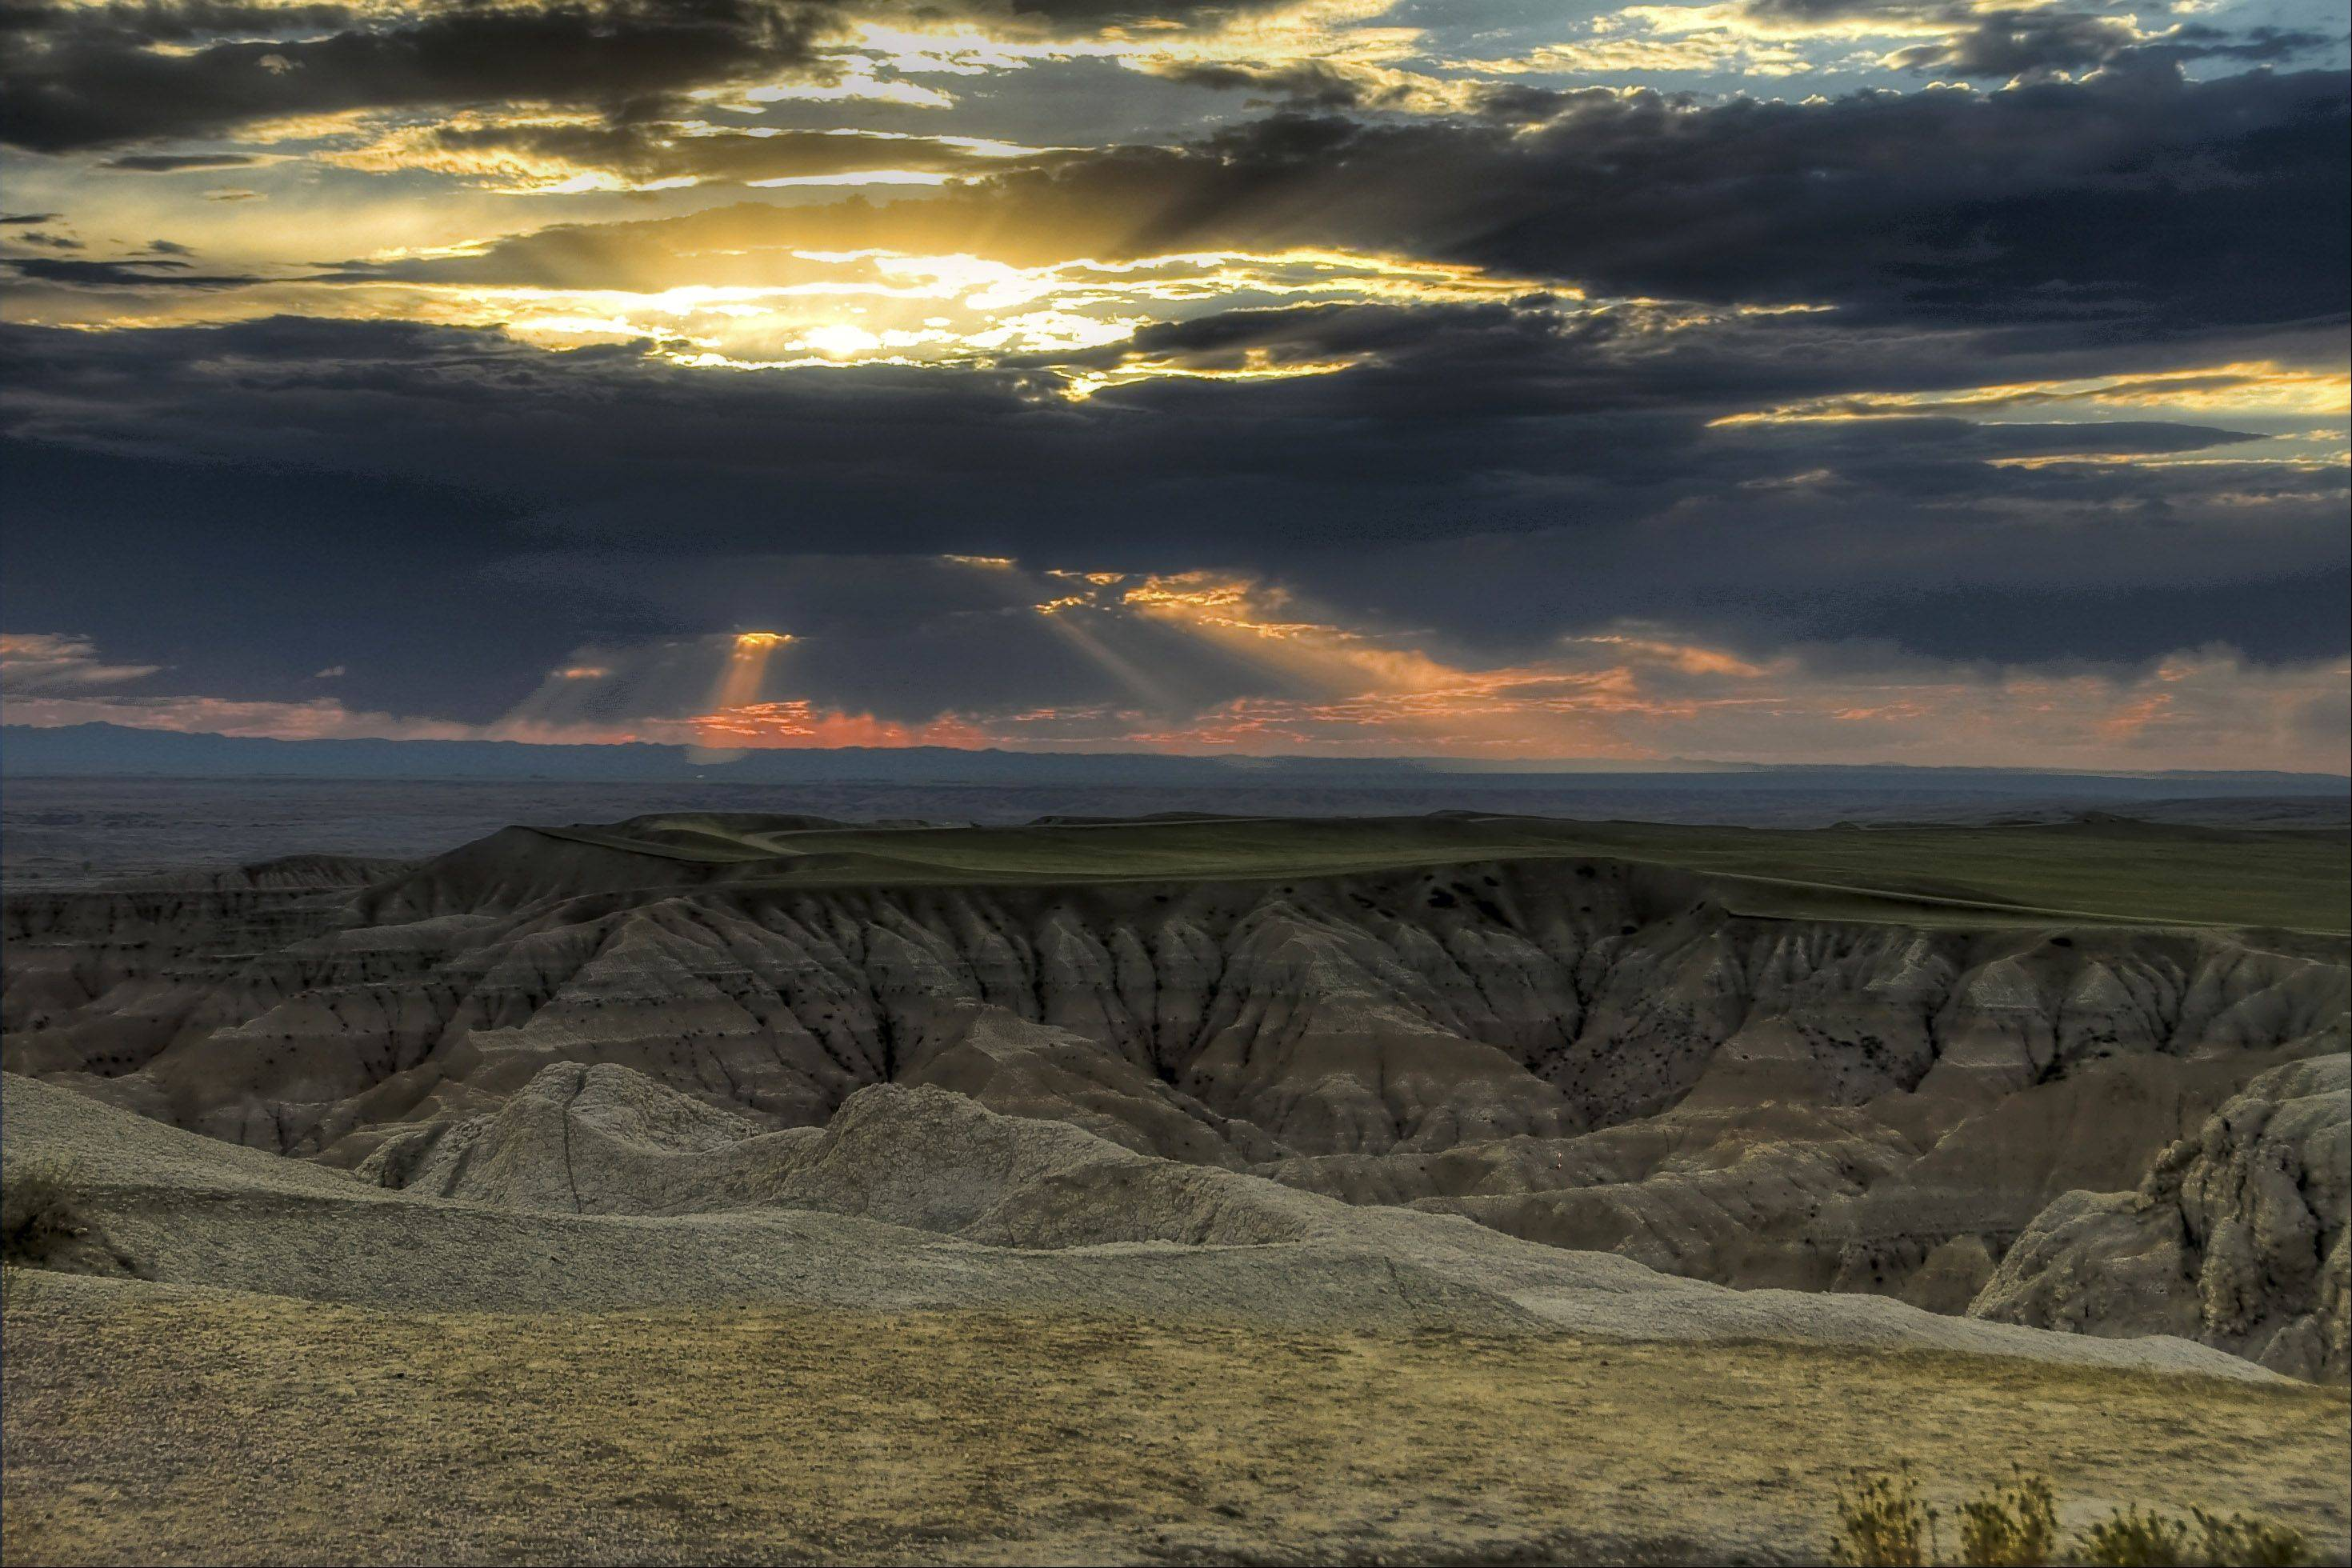 This is a photo of a Badlands sunset taken last week. Arrived in Wall South Dakota with just enough daylight to capture a few colorful moments. It was a great way to start a vacation, and it made up for the hazy smoke filled skies we would later encounter in Wyoming.